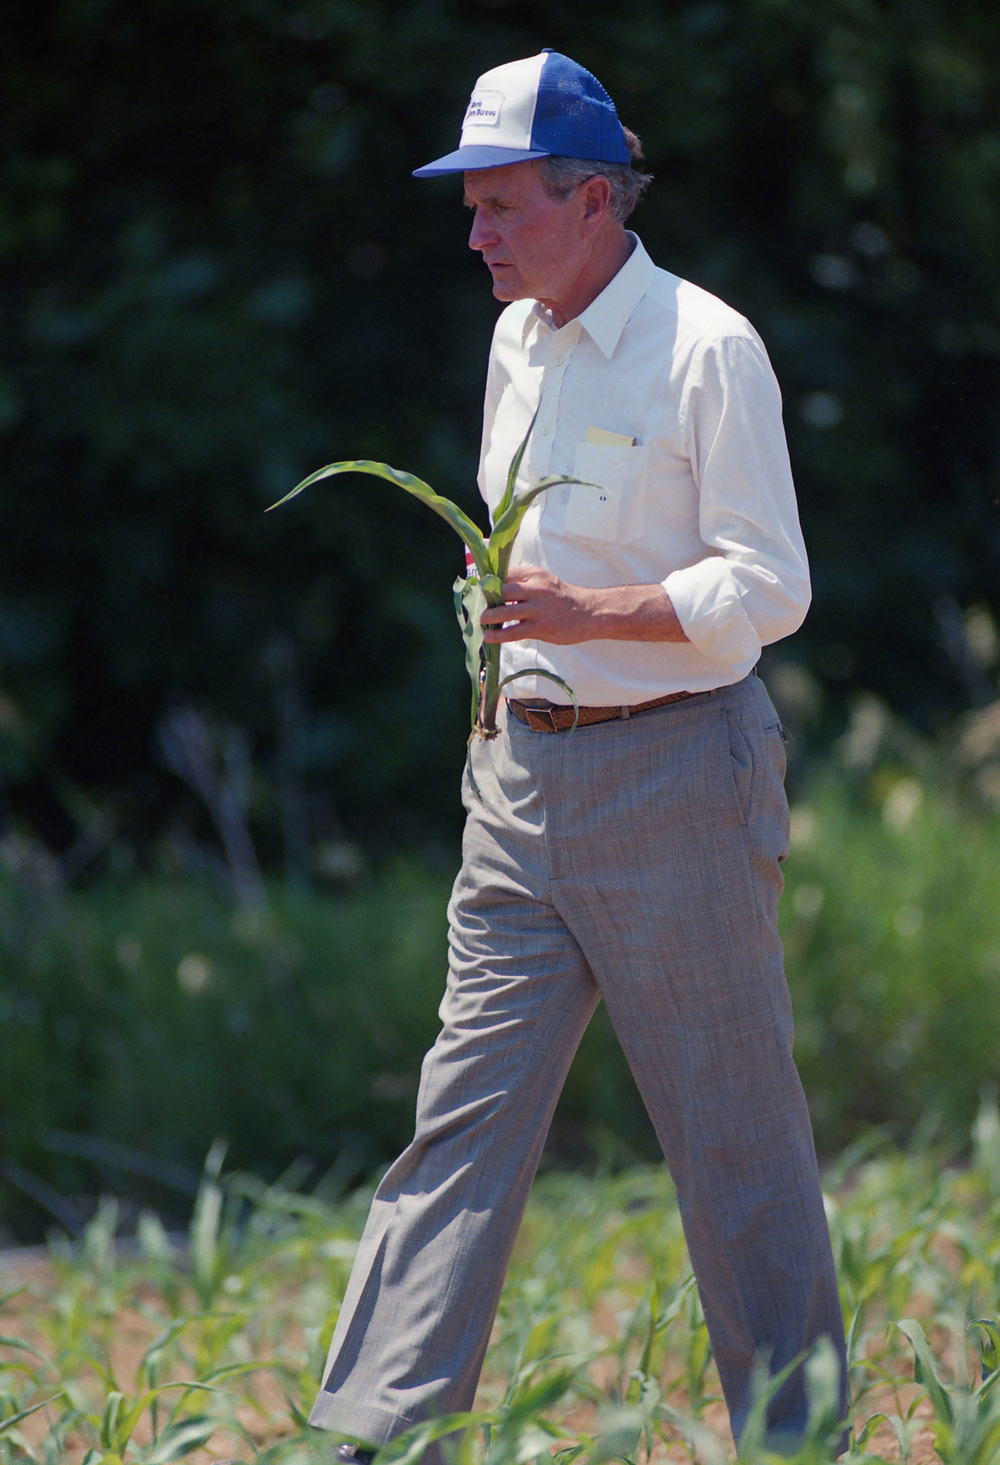 Vice President George H.W. Bush carries a stunted corn plant after a press conference June 18, 1988 in a field near Sherman. Bush was touring Raymond Poe's drought stricken corn field during a campaign stop in the area. File/The State Journal-Register